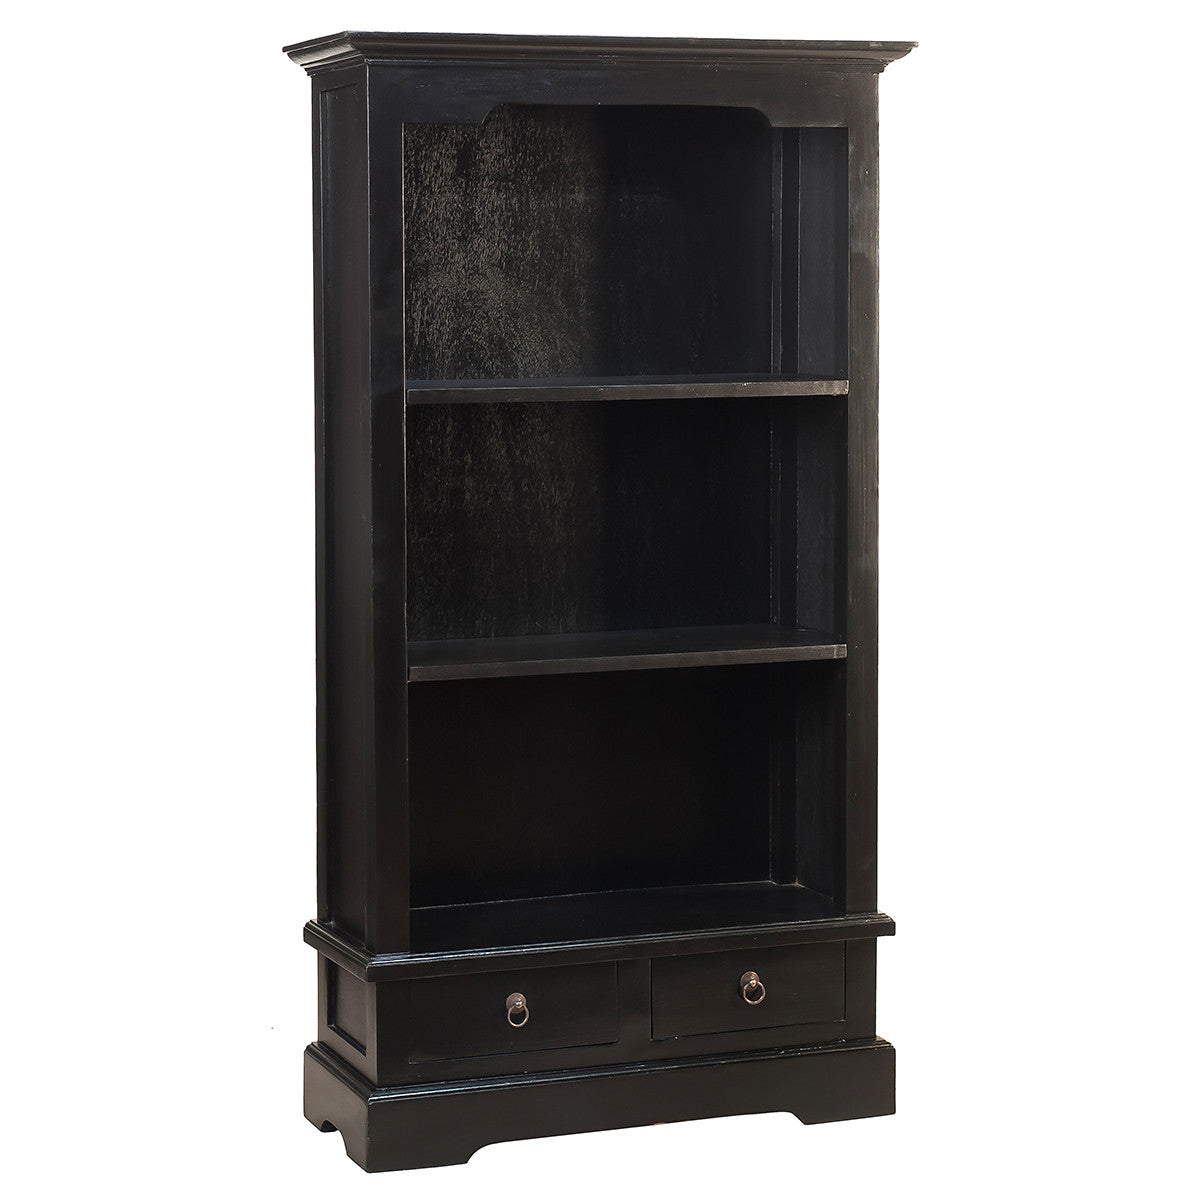 Charlotte Bookcase 55 Black Wrightwood Furniture